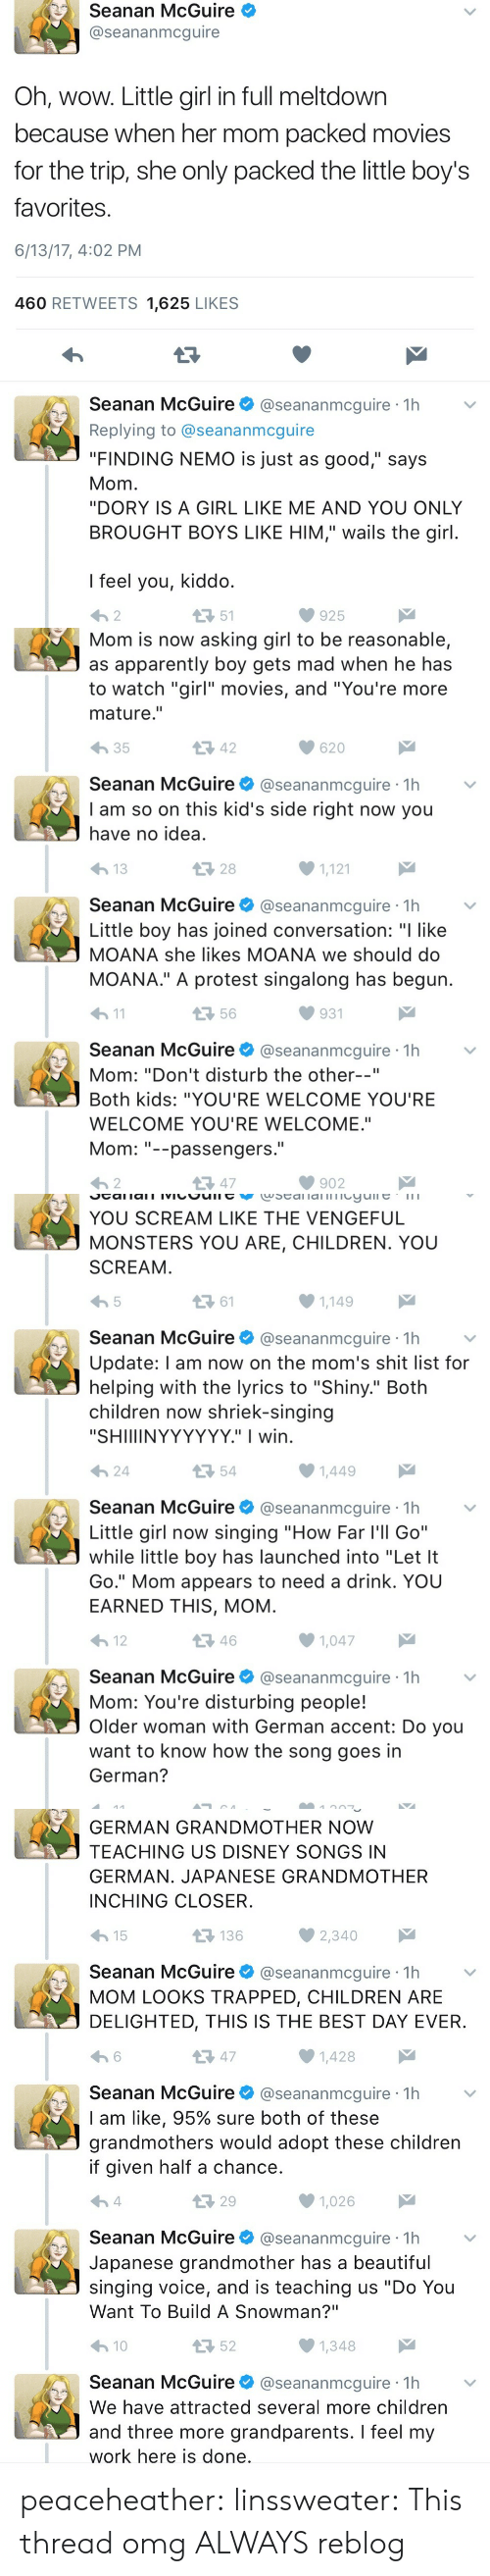 "Passengers: Seanan McGuire  @seananmcguire  Oh, wow. Little girl in full meltdown  because when her mom packed movies  for the trip, she only packed the little boy's  favorites  6/13/17, 4:02 PM  460 RETWEETS 1,625 LIKES  Seanan McGuire@seananmcguire 1h  Replying to @seananmcguire  ""FINDING NEMO is just as good,"" says  Mom  ""DORY IS A GIRL LIKE ME AND YOU ONLY  BROUGHT BOYS LIKE HIM,"" wails the girl  I feel you, kiddo  わ2  51  925   Mom is now asking girl to be reasonable,  as apparently boy gets mad when he has  to watch ""girl"" movies, and ""You're more  mature.""  わ35  42  620  Seanan McGuire@seananmcguire 1h  I am so on this kid's side right now you  have no idea  28  1,121  Seanan McGuire@seananmcguire 1h  Little boy has joined conversation: ""I like  MOANA she likes MOANA we should do  MOANA."" A protest singalong has begun  h1  56  931  Seanan McGuire@seananmcguire 1h  Mom: ""Don't disturb the other--""  Both kids: ""YOU'RE WELCOME YOU'RE  WELCOME YOU'RE WELCOME.""  Mom--passengers.  わ2  다 47  902   YOU SCREAM LIKE THE VENGEFUL  MONSTERS YOU ARE, CHILDREN. YOU  SCREAM  ロ61  1,149  Seanan McGuire@seananmcguire 1h  Update: l am now on the mom's shit list for  helping with the lyrics to ""Shiny."" Both  children now shriek-singing  ""SHIIIINYYYYYY."" I wirn  24  54  Seanan McGuireネ@seananmcgure·1h  Little girl now singing ""How Far l'll Go""  while little boy has launched into ""Let It  Go."" Mom appears to need a drink. YOU  EARNED THIS, MOM  12  46  1,047  Seanan McGuire@seananmcguire 1h  Mom: You're disturbing people!  Older woman with German accent: Do you  want to know how the song goes in  German?   GERMAN GRANDMOTHER NOW  TEACHING US DISNEY SONGS IN  GERMAN. JAPANESE GRANDMOTHER  INCHING CLOSER  15  136  Seanan McGuire@seananmcguire 1h  MOM LOOKS TRAPPED, CHILDREN ARE  DELIGHTED, THIS IS THE BEST DAY EVER  13 47  1,428  Seanan McGuire@seananmcguire 1h  I am like, 95% sure both of these  grandmothers would adopt these children  if given half a chance  29  1,026  Seanan McGuire @seananmcguire·1h  Japanese grandmother has a beautiful  singing voice, and is teaching us ""Do You  Want To Build A Snowman?""  10  52  Seanan McGuire@seananmcguire 1h  We have attracted several more children  and three more grandparents. I feel my  work here is done peaceheather:  linssweater: This thread omg ALWAYS reblog"